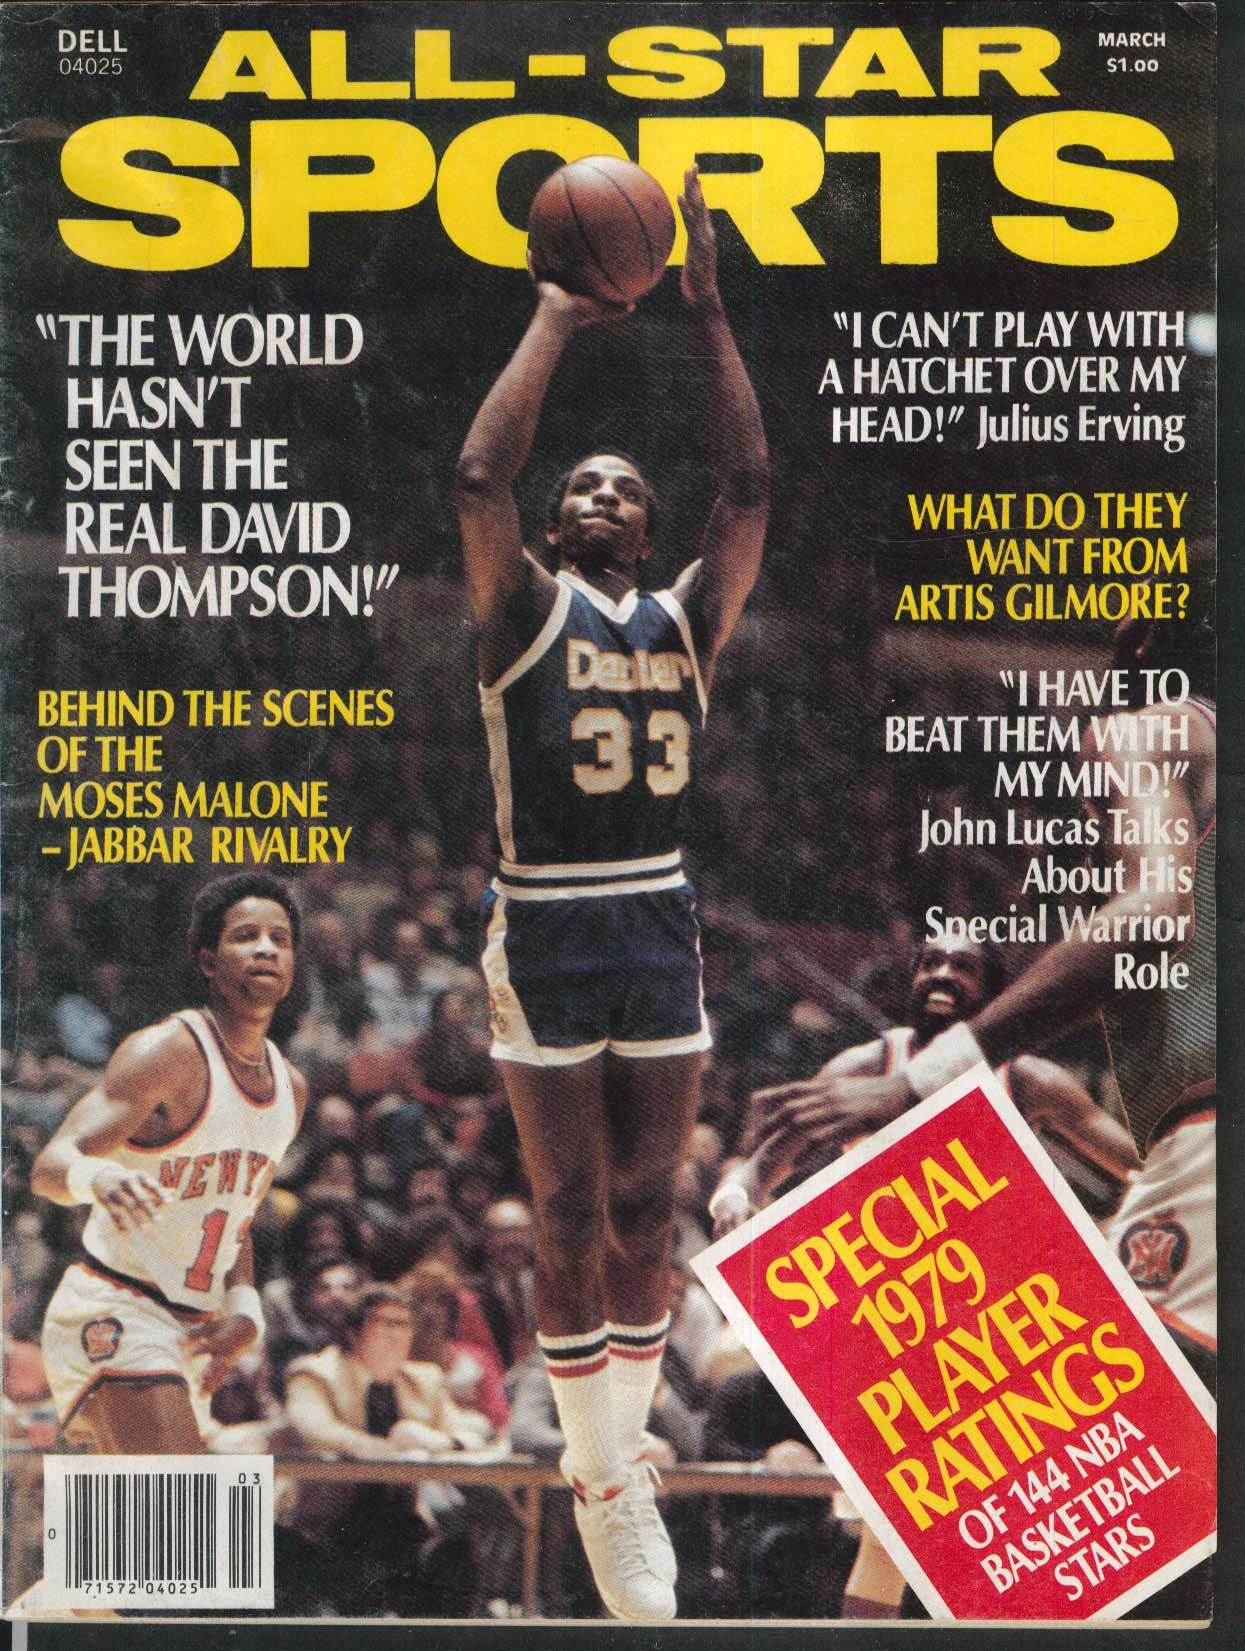 ALL-STAR SPORTS David Thompson Julius Erving Artis Gilmore John Lucas 3 1980